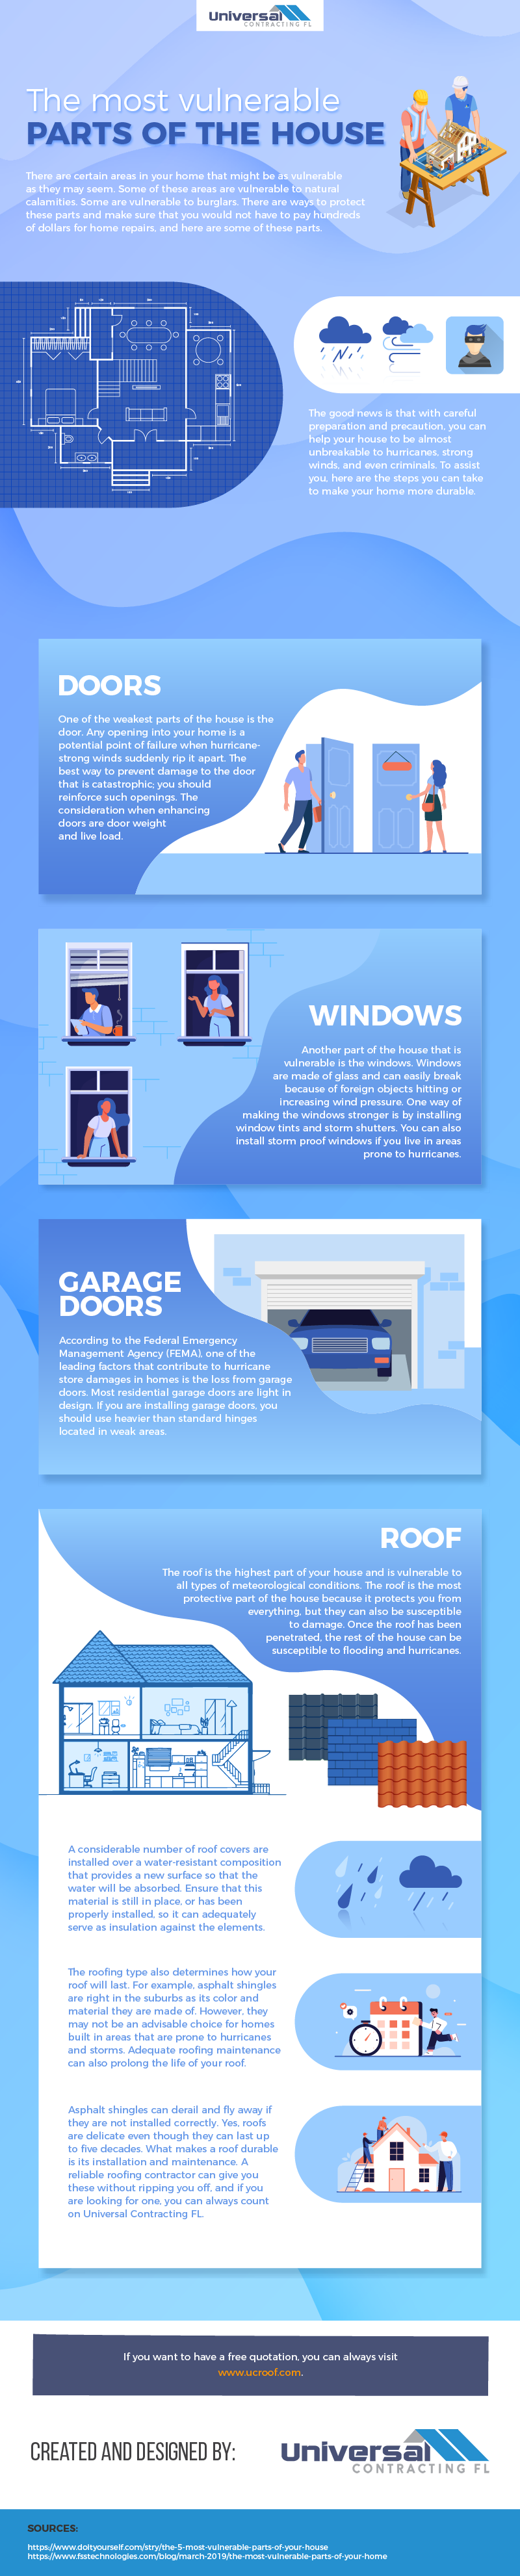 The-most-vulnerable-parts-of-the-house-infographic